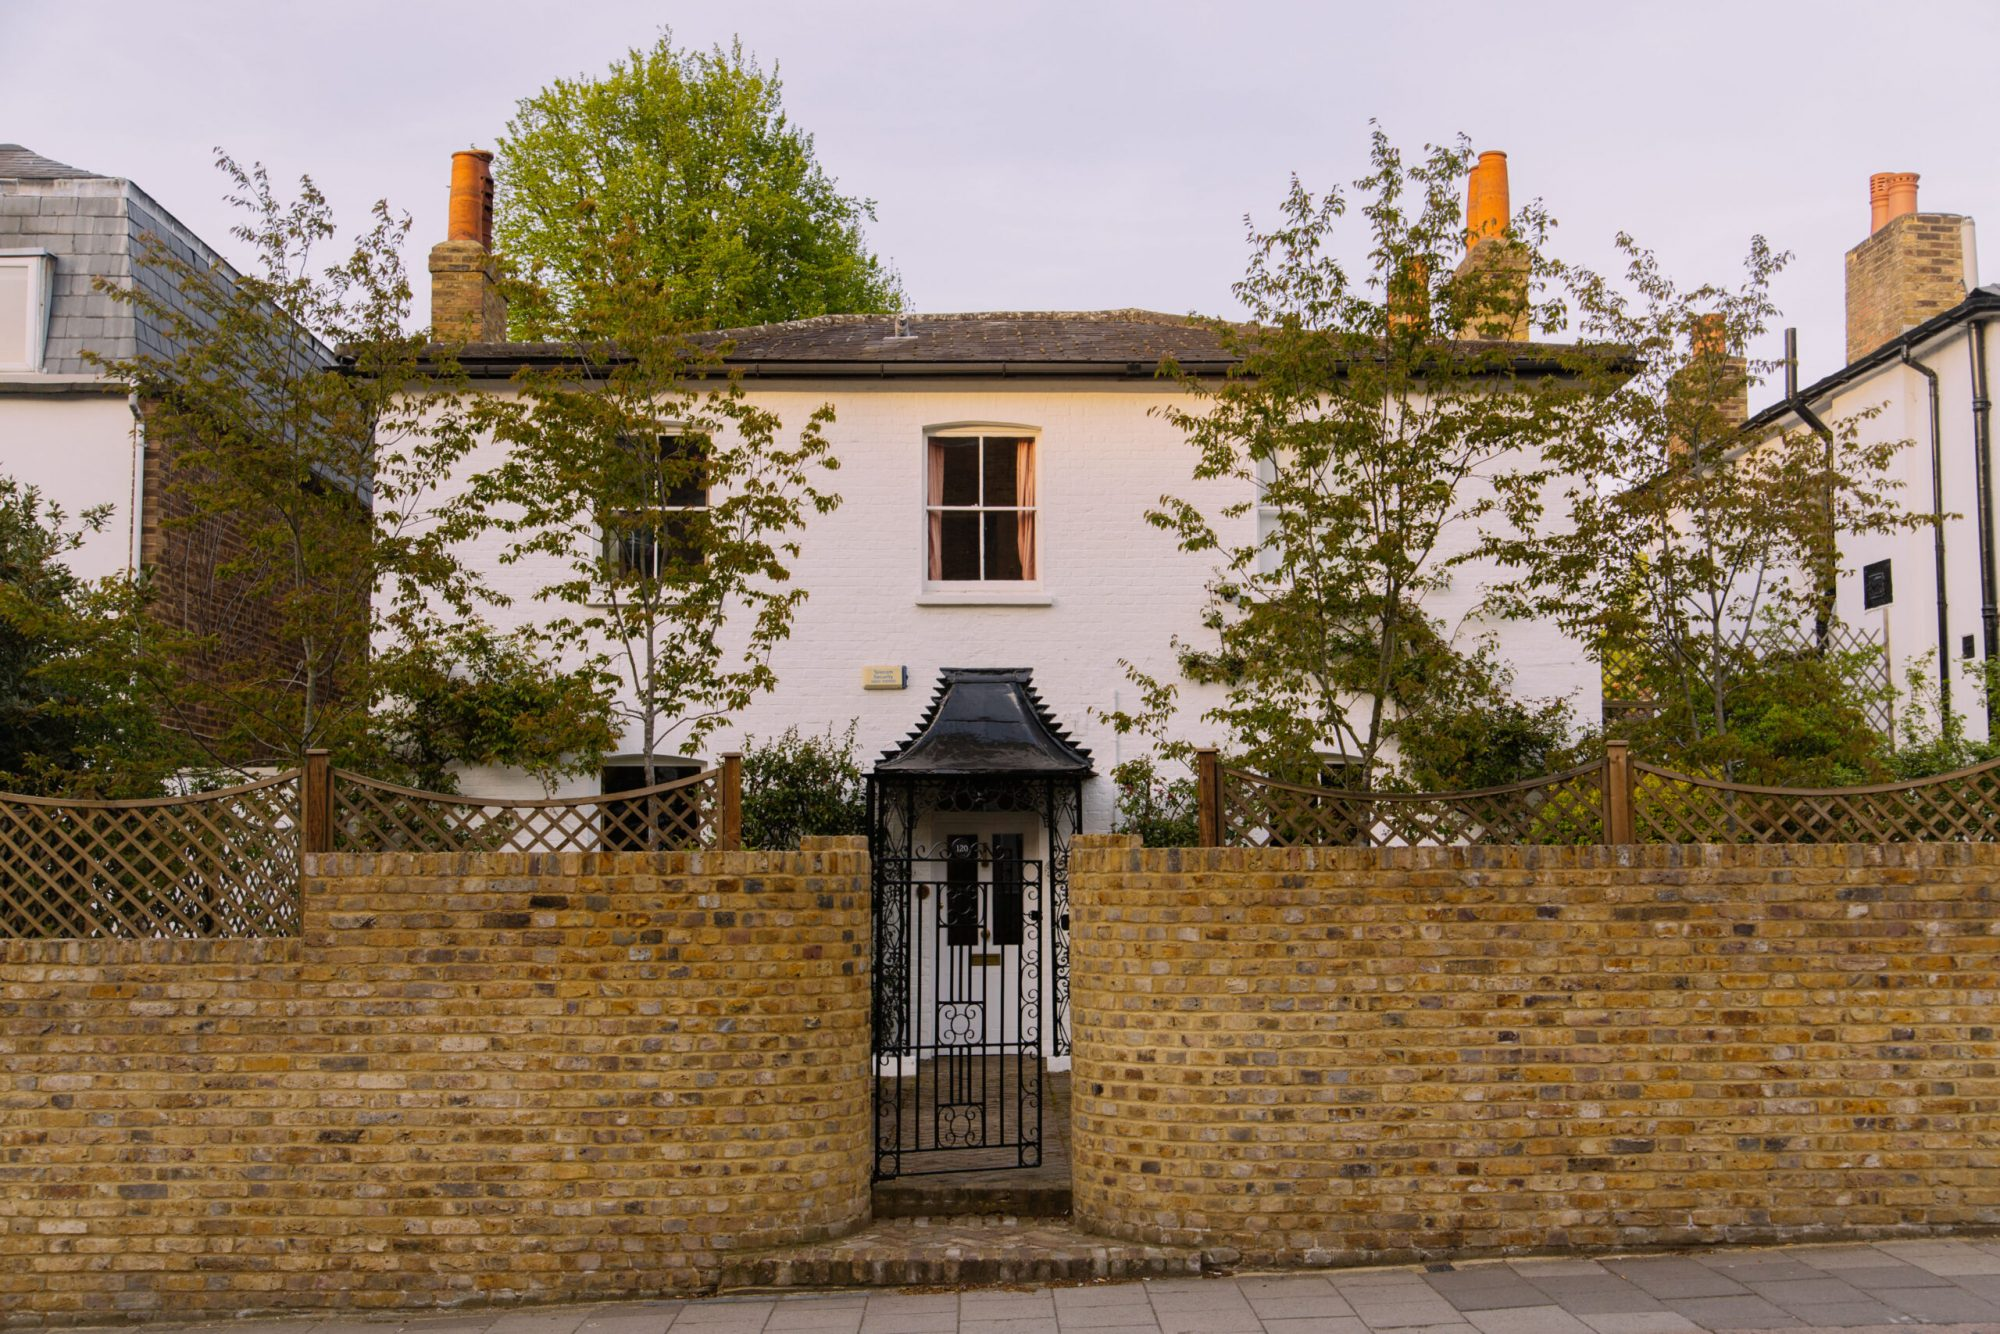 a picture of the exterior of a house in Islington